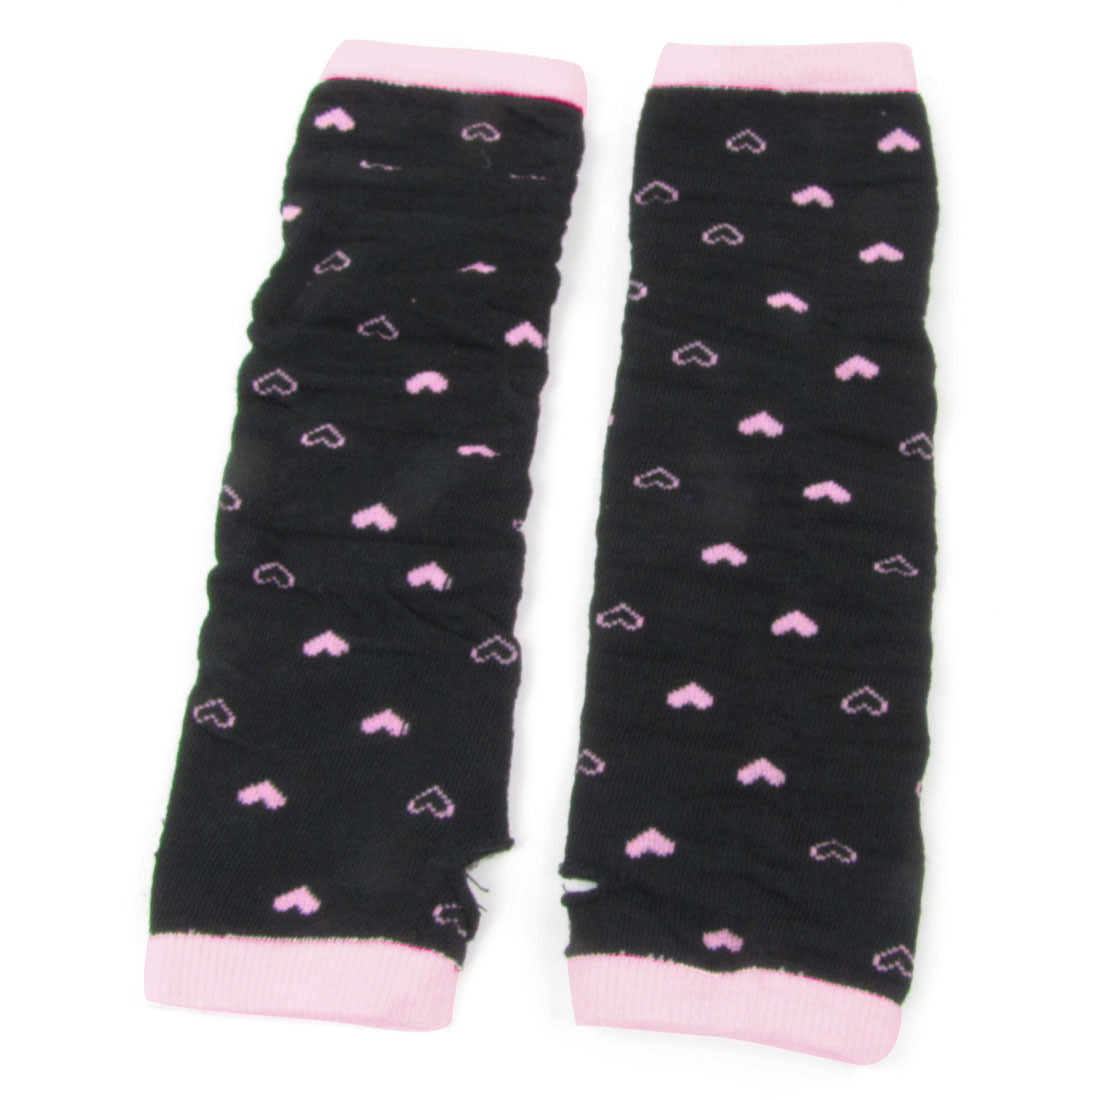 Pair Lady Hearts Print Knitted Elastic Arm Warmers Gloves Black Light Pink